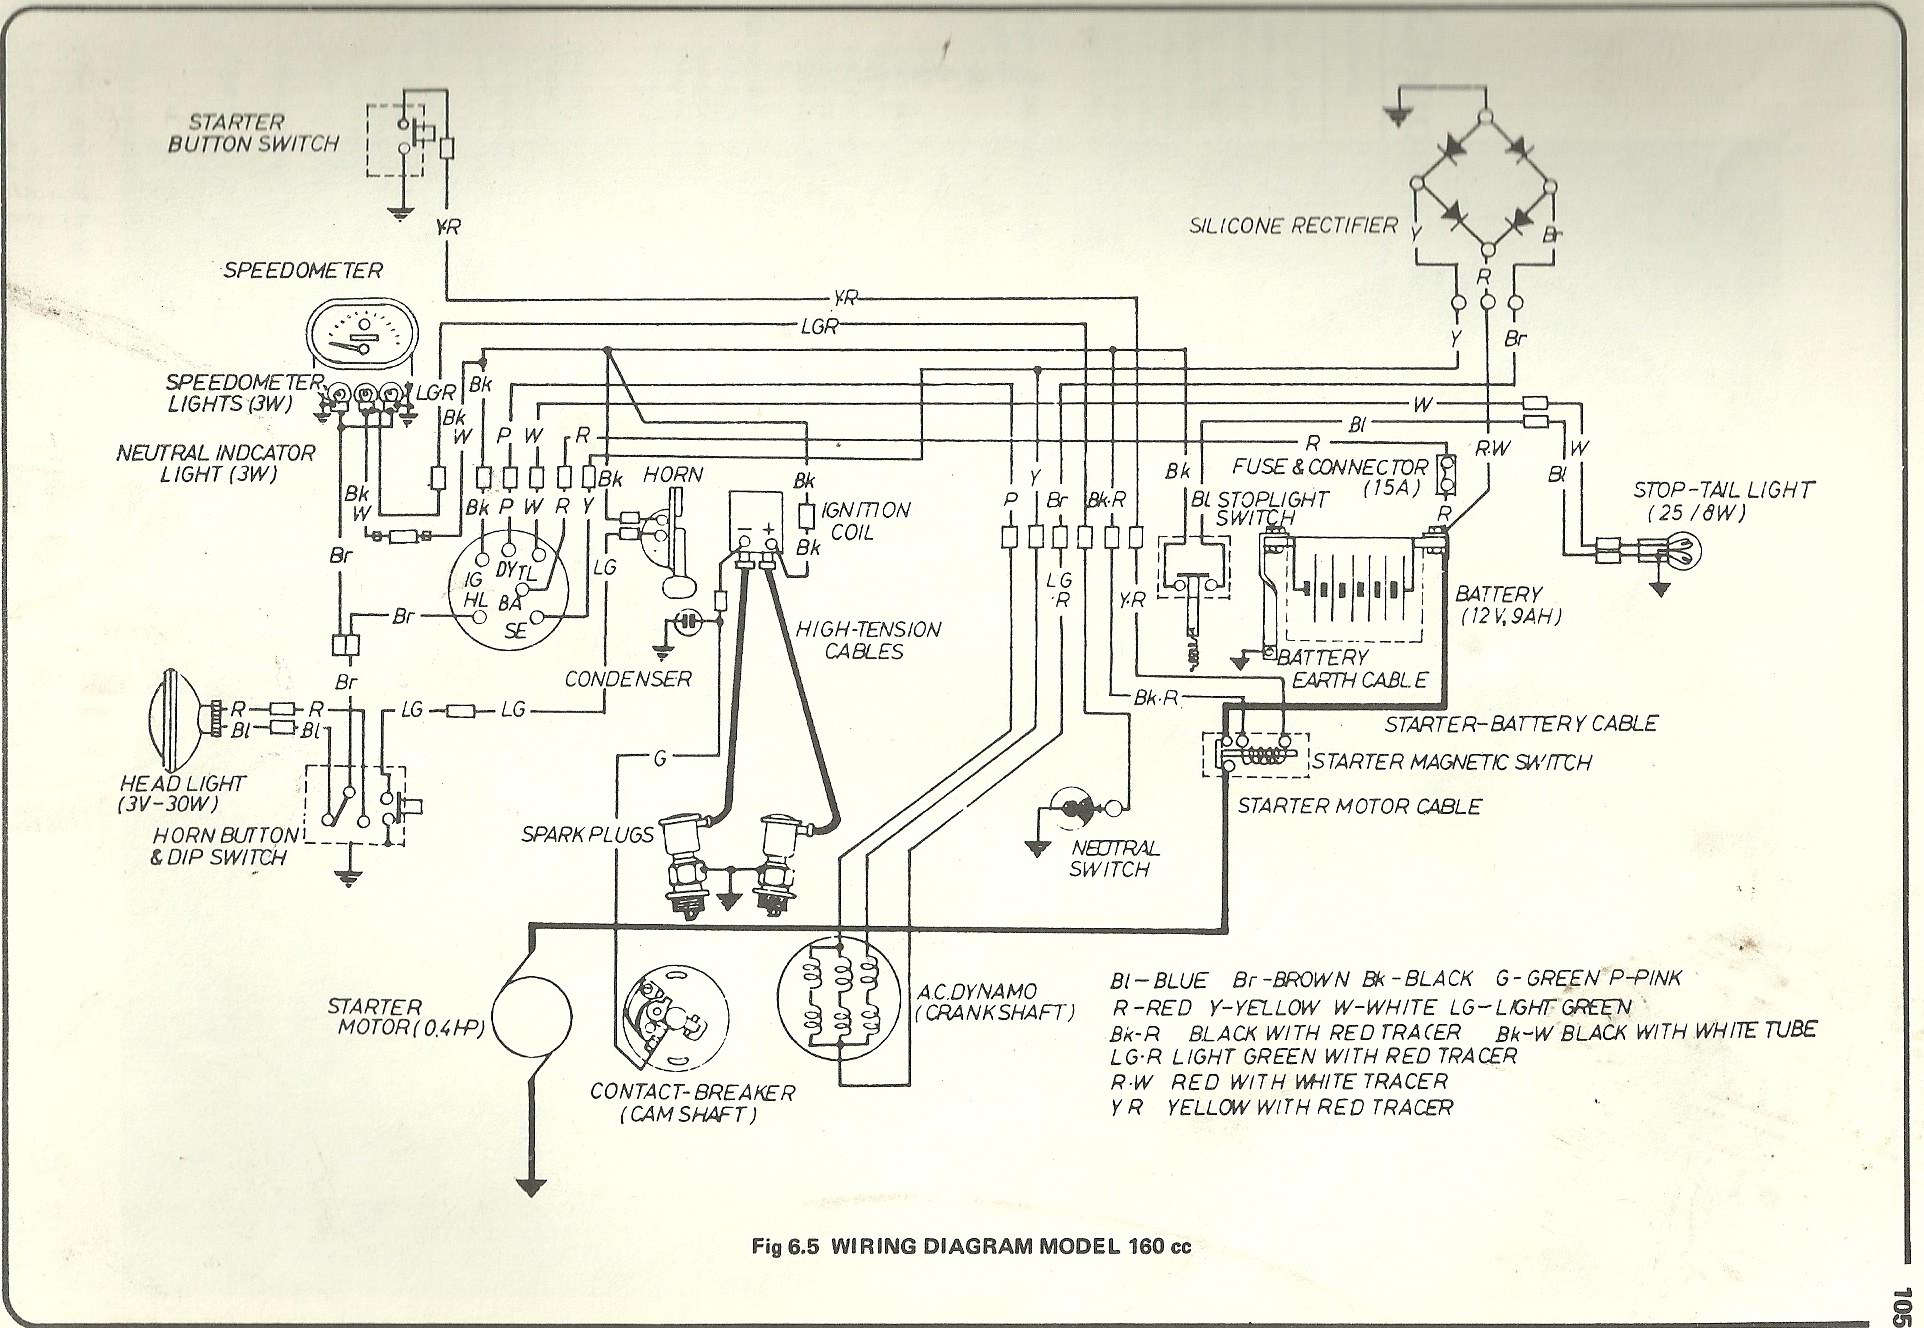 Gl1500 Trailer Wiring Diagram - Nice Sharing Of Wiring Diagram • - Gl1500 Trailer Wiring Diagram